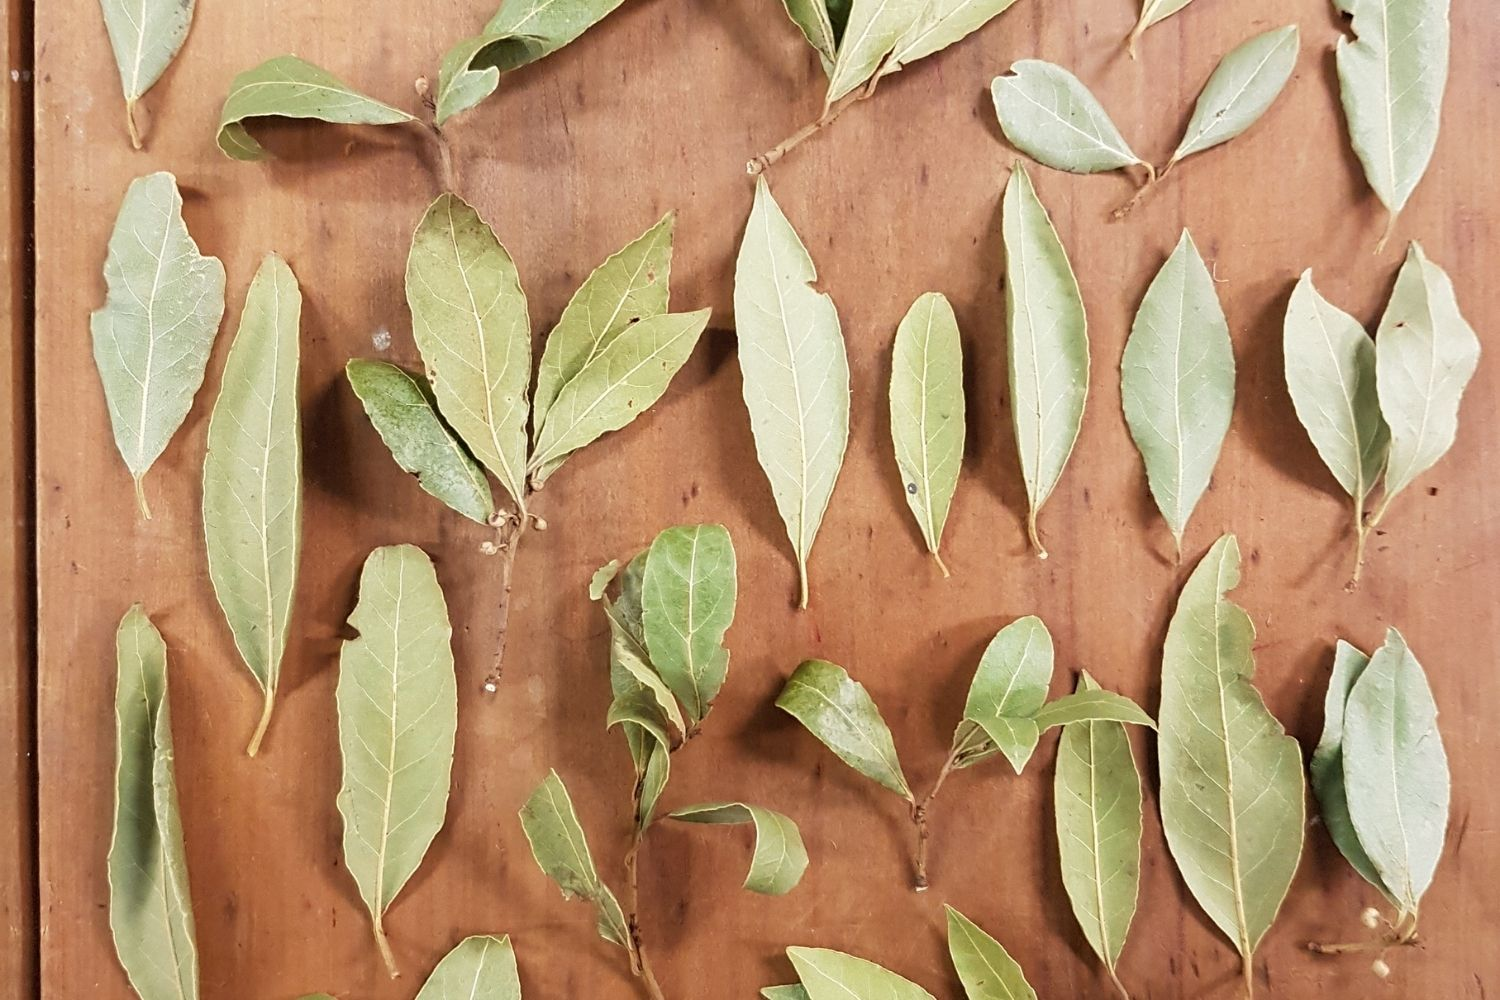 drying bay leaves